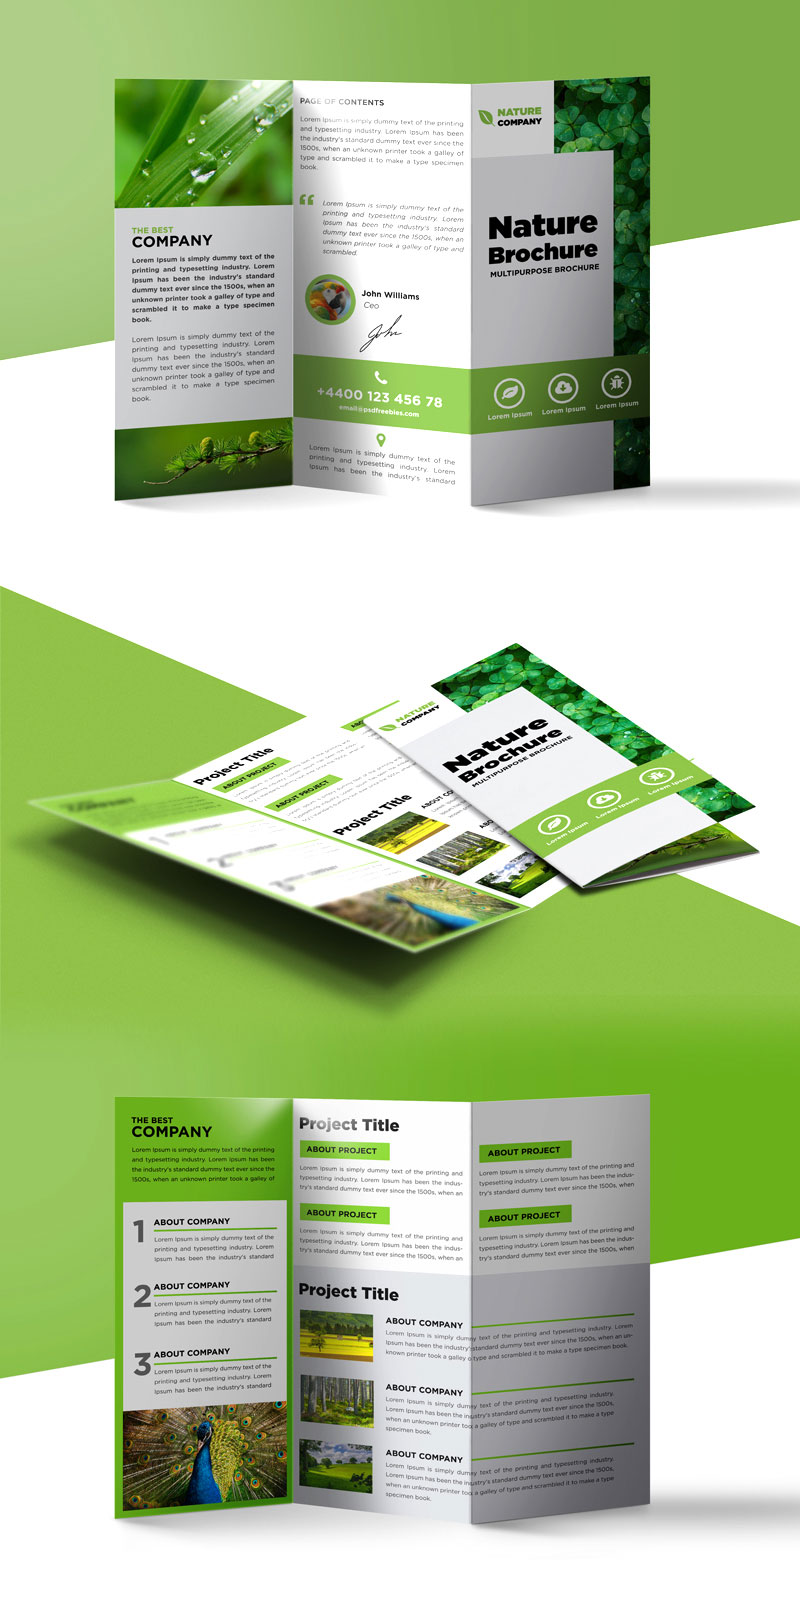 Nature tri fold brochure template free psd for Free tri fold brochure templates for word